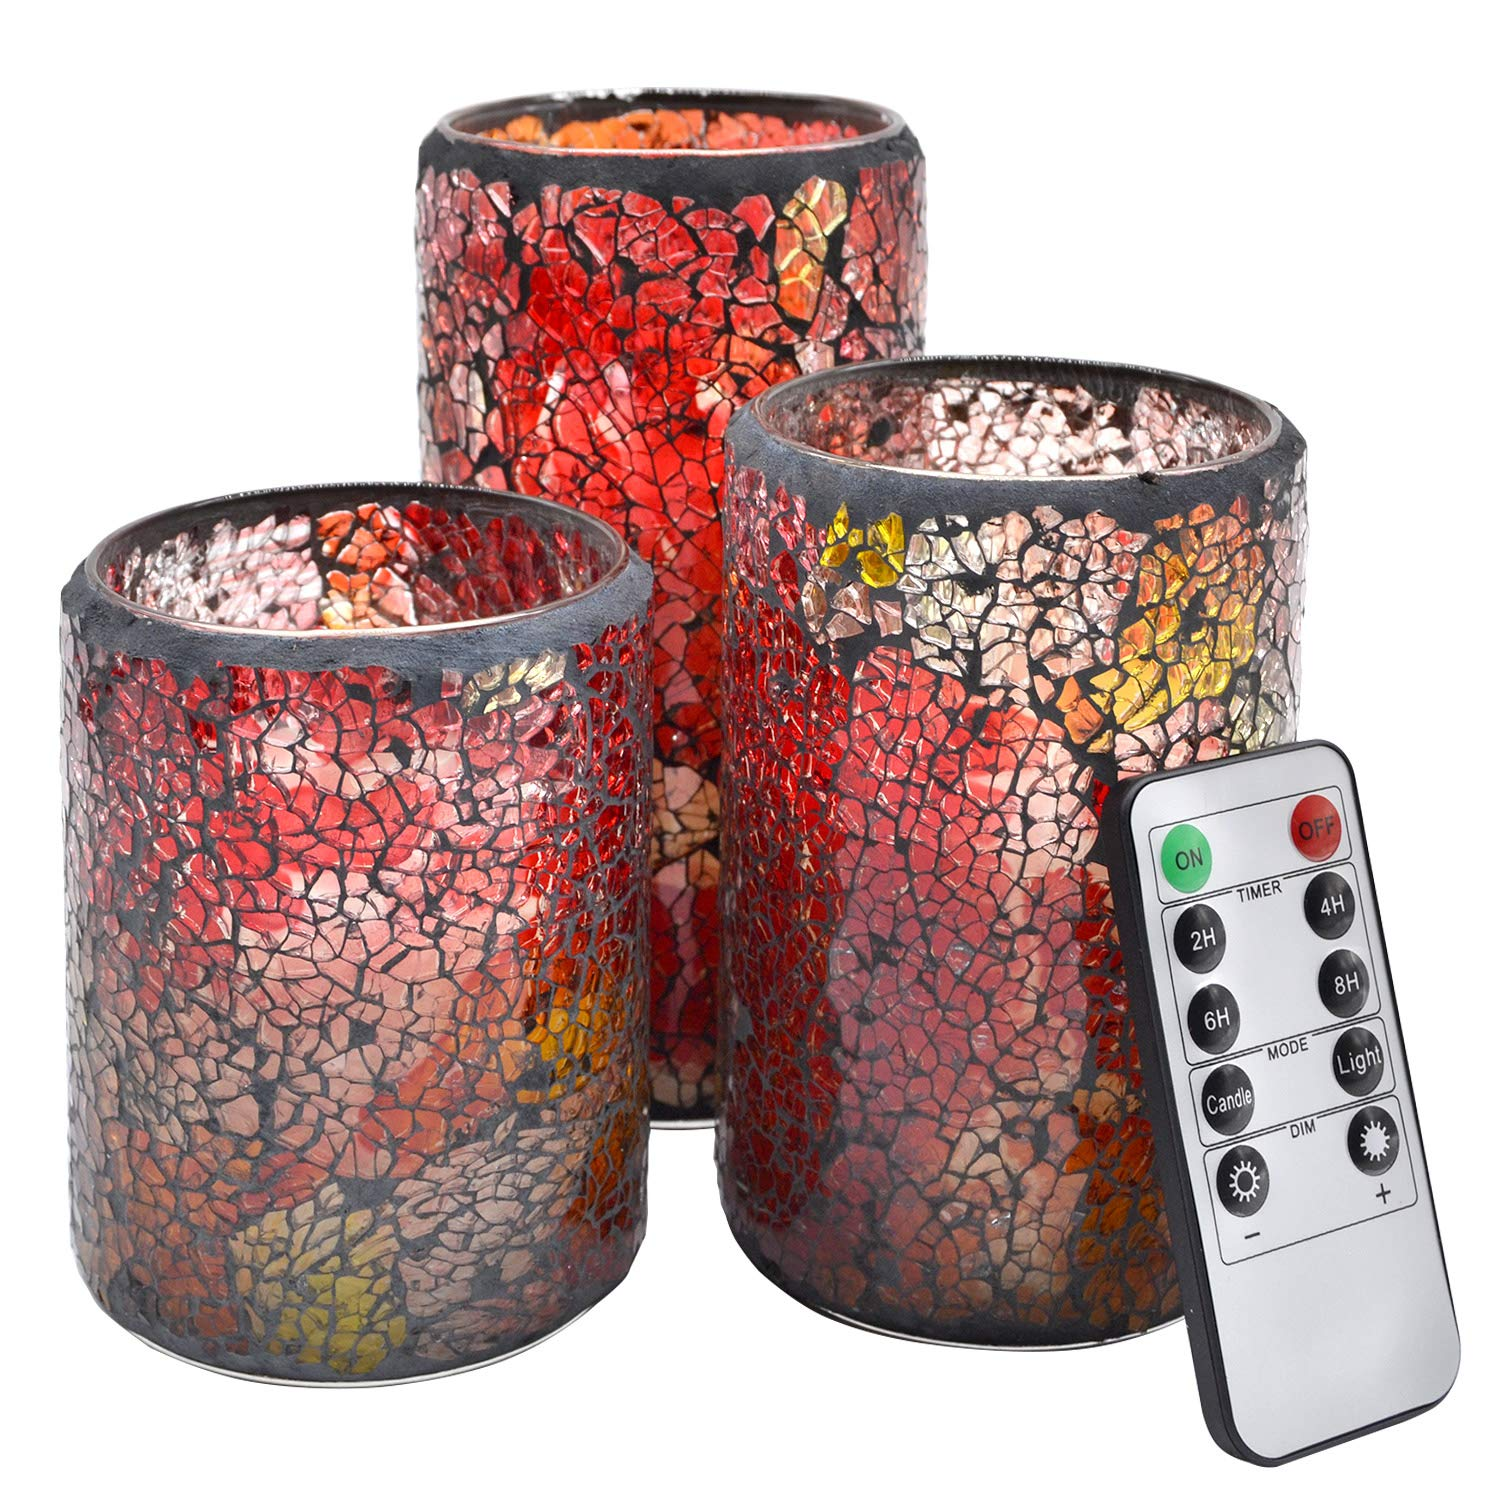 NIGHTKEY LED Mosaic Glass Dancing Flame Real Wax Pillar Candle with 10-Key Control Remote and 2/4/6/8H Timer, Vanilla Scented, Pack of 3 (3''X 4''5'' 6'') by NIGHTKEY